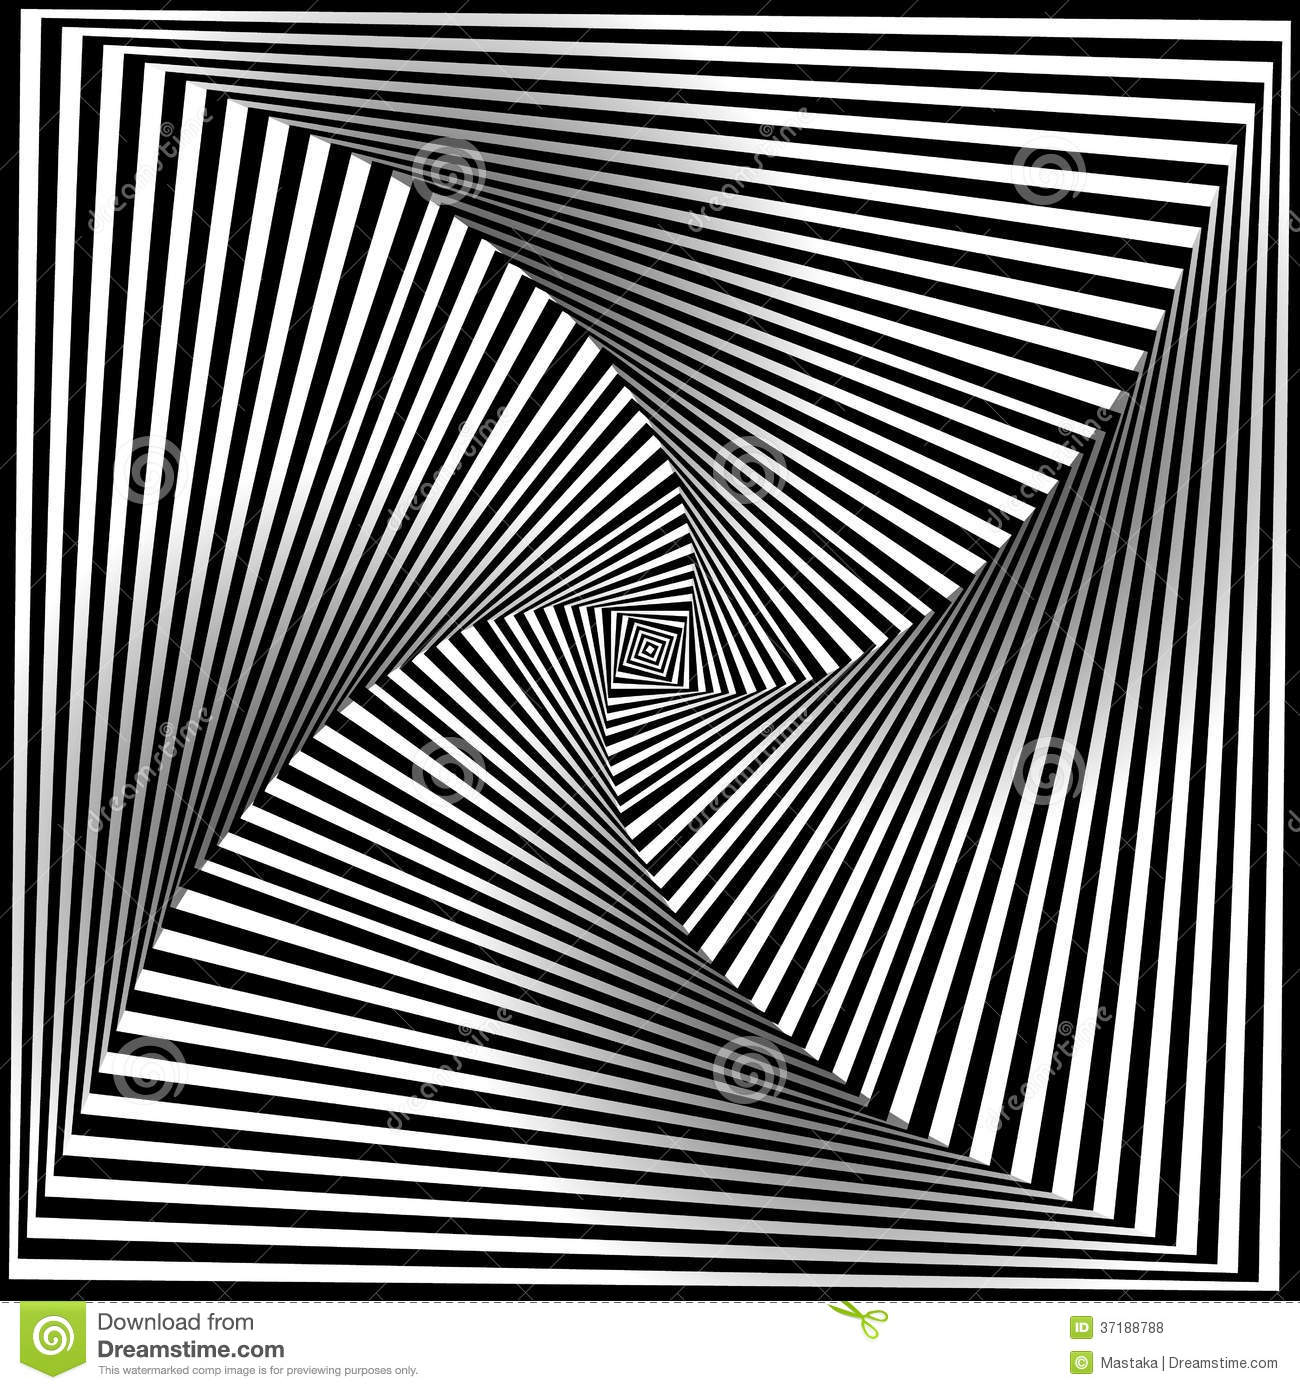 Line Art Optical Illusion : Black and white opt art background stock vector image